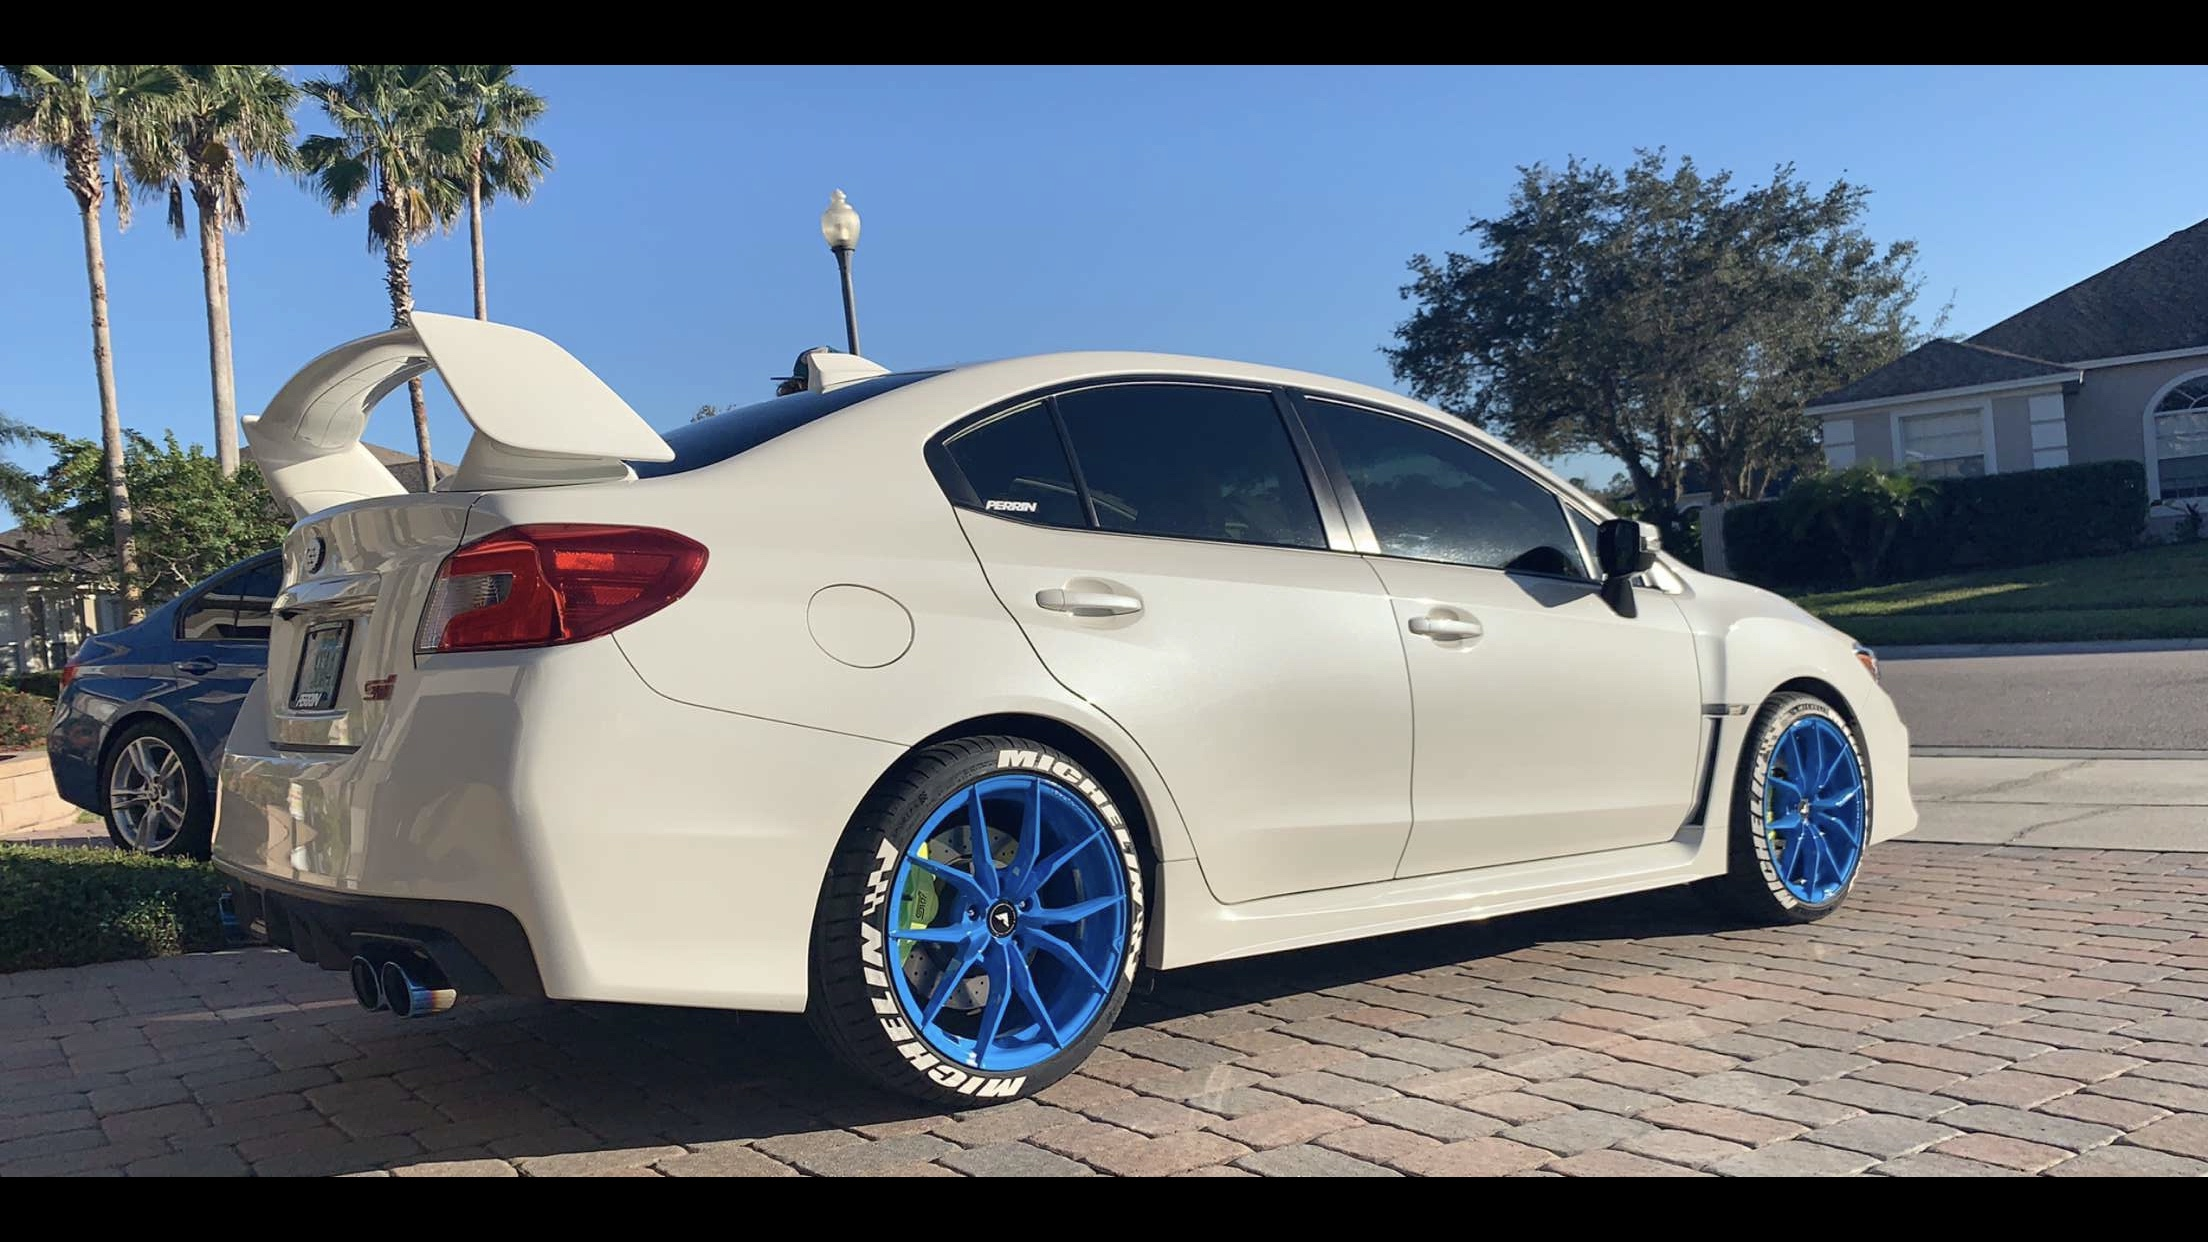 2018 sti for sale-img_e2697-jpg